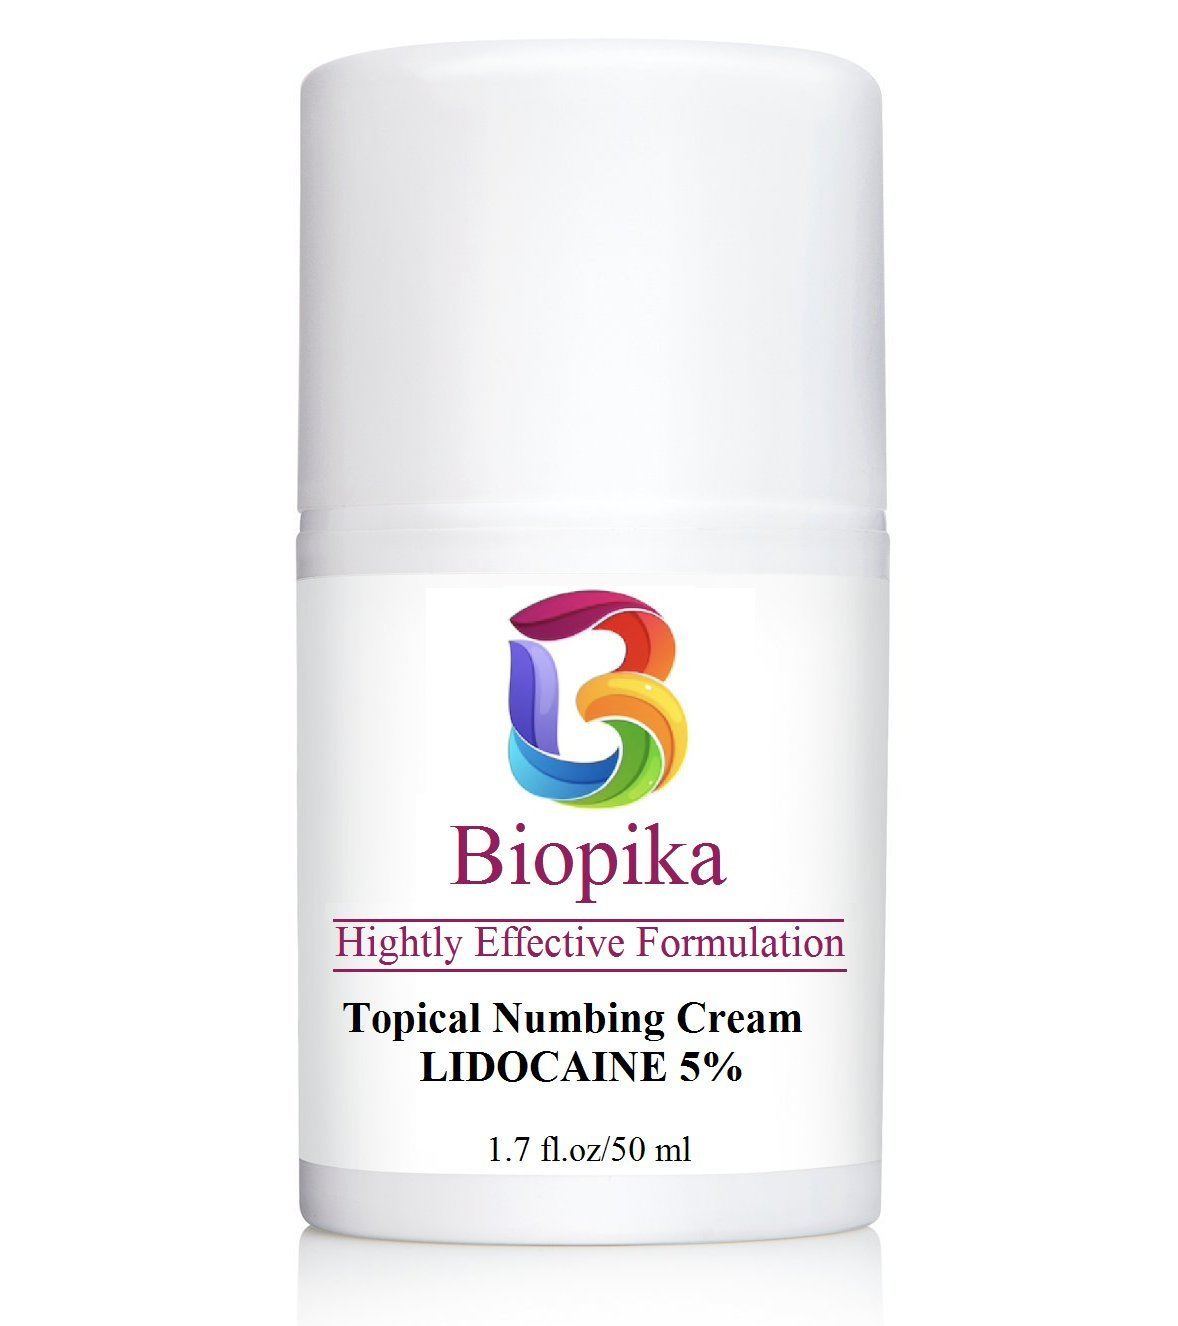 BIOPIKA, Topical Numbing 5% (LIDOCAINE) Local Anesthetic Provides Pain Relief and Prevention - Airless Pump, 1.7 Oz